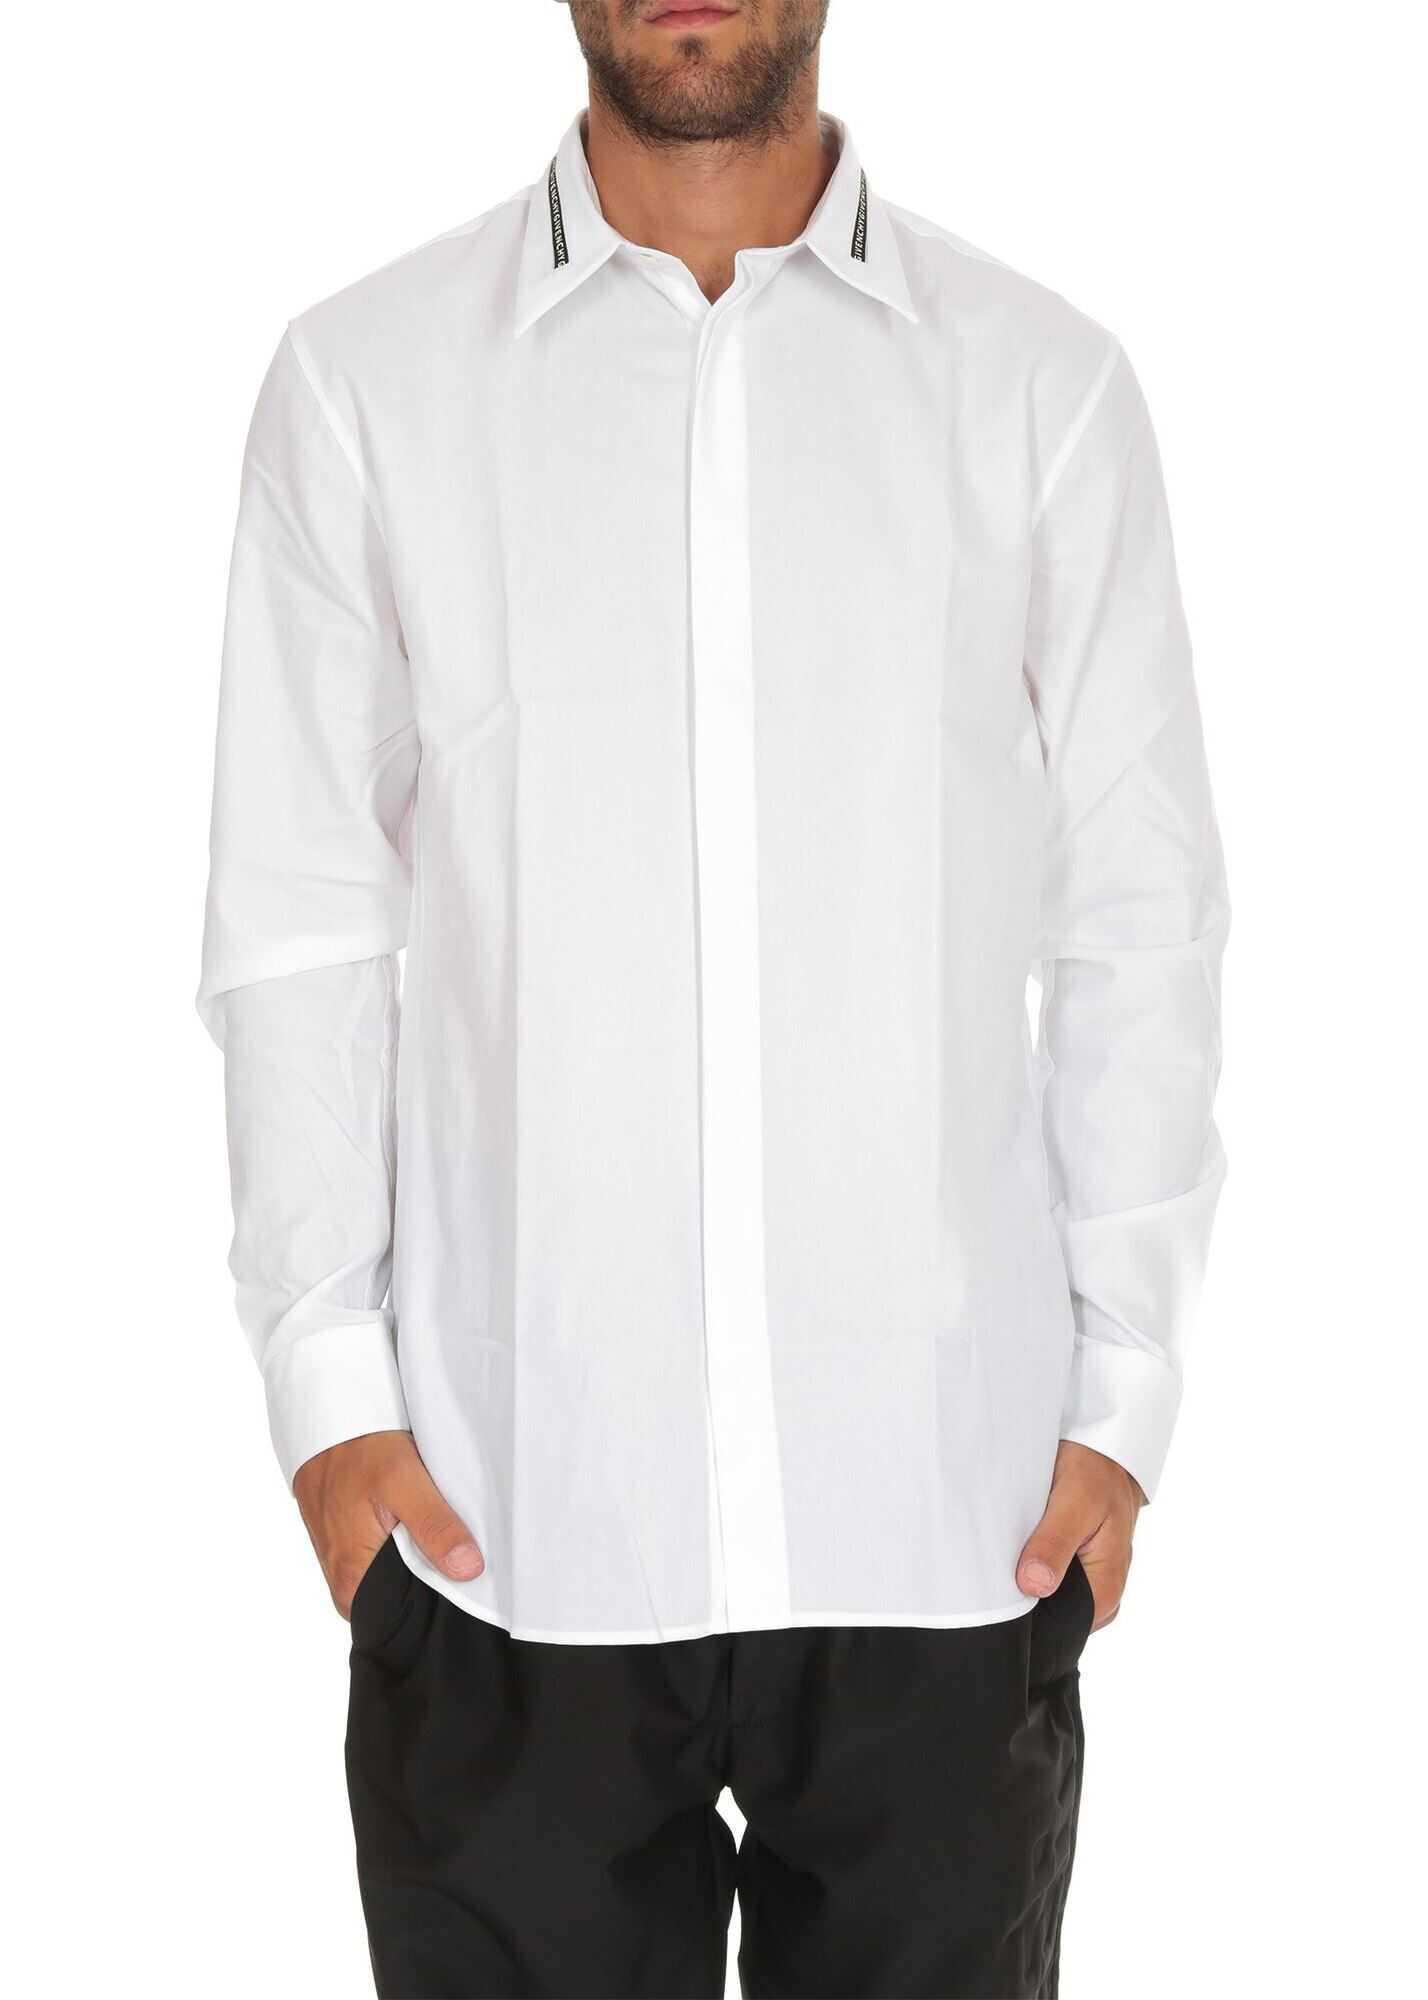 Givenchy Shirt With Givenchy Band On The Collar White